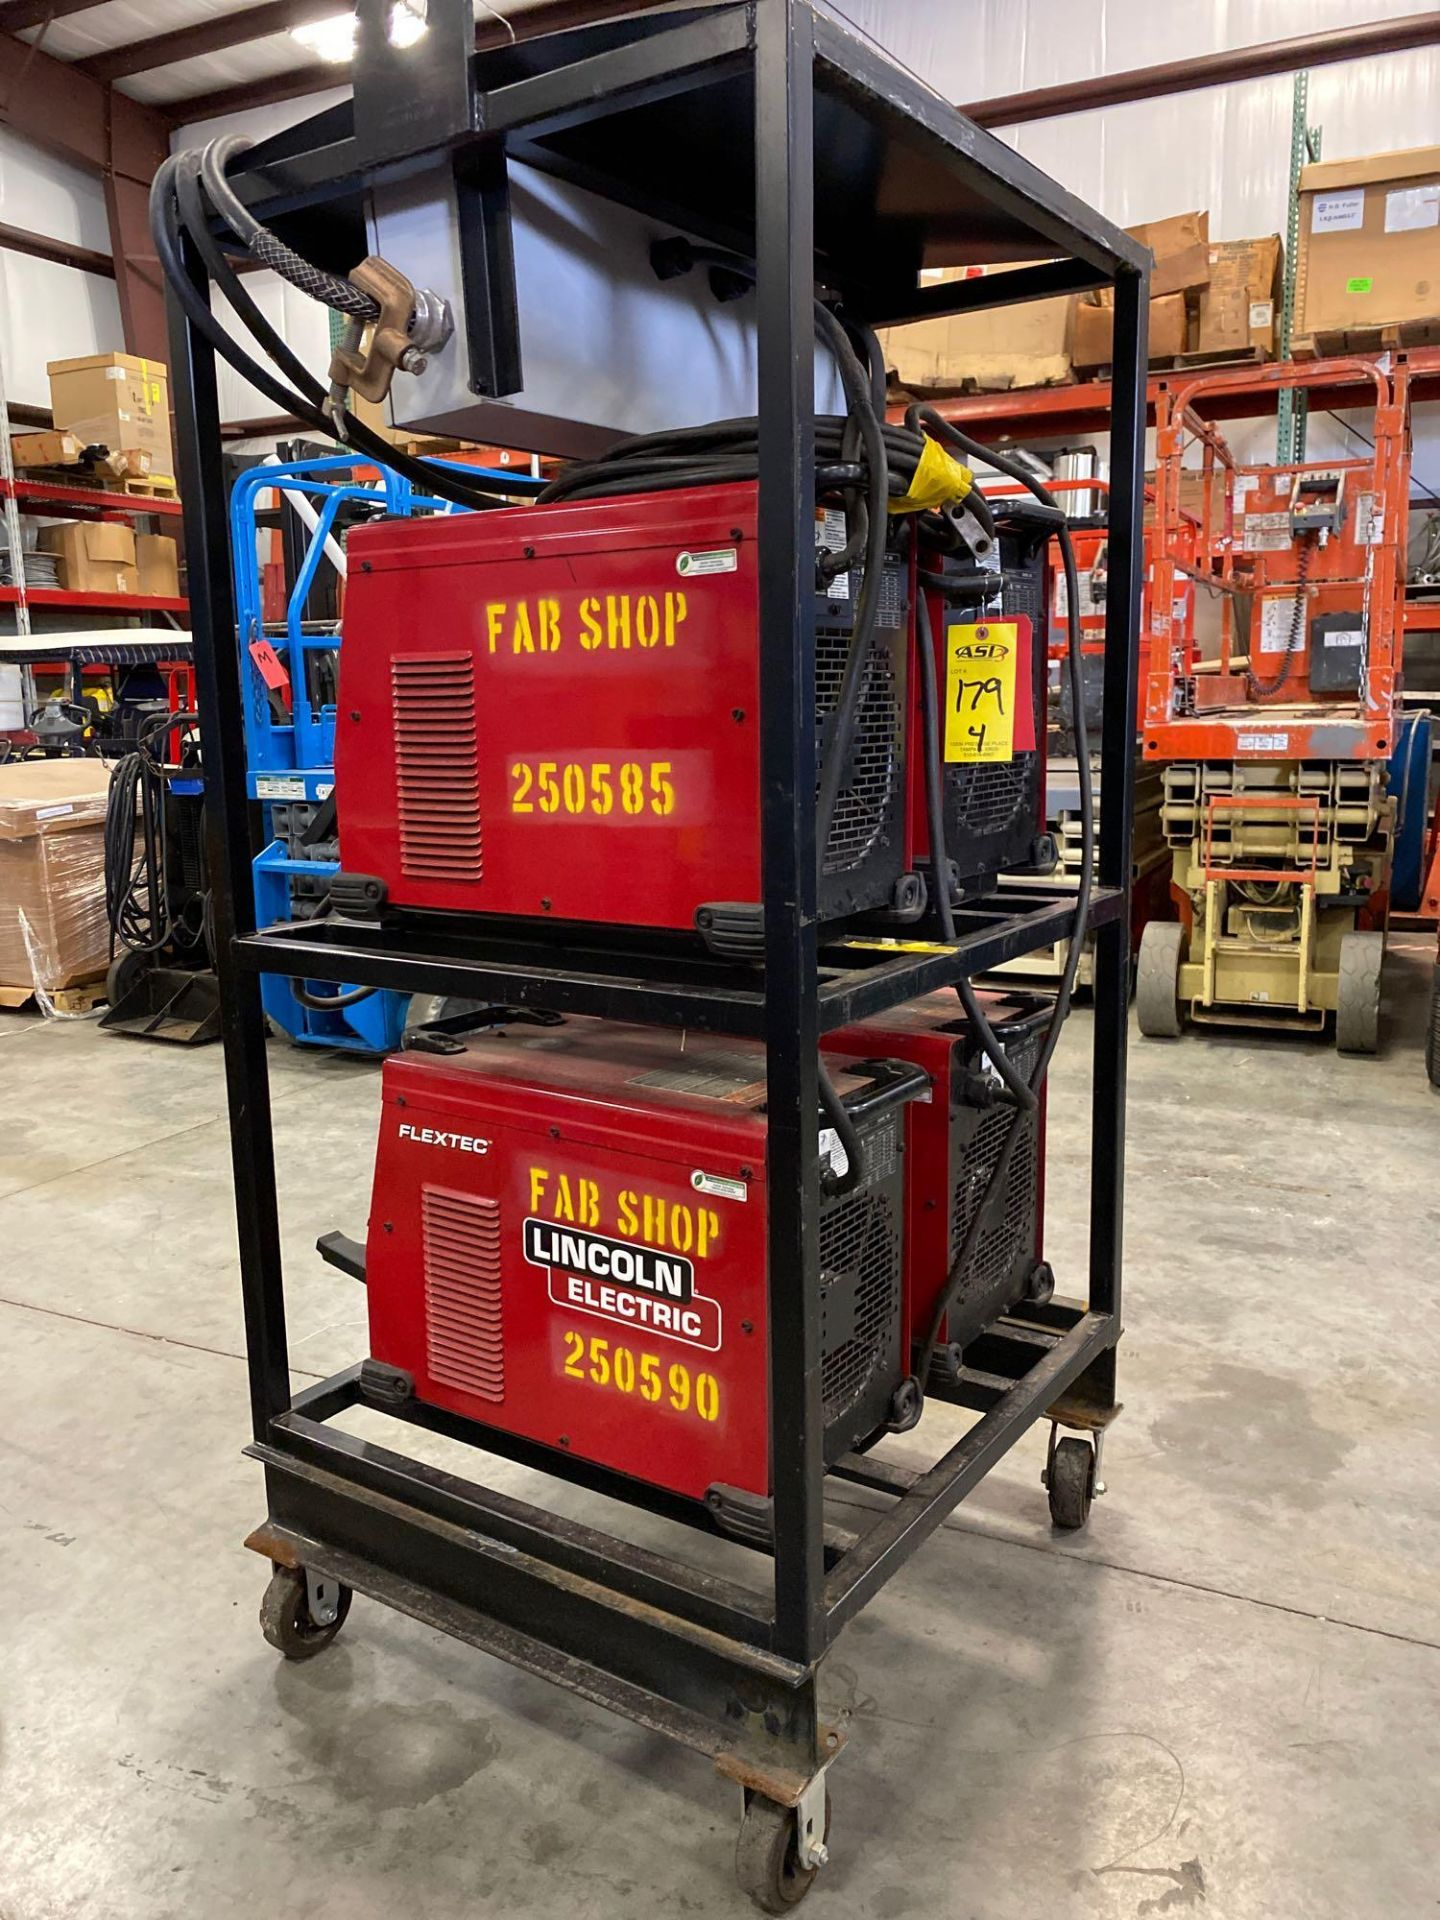 Lot 179 - FOUR LINCOLN ELECTRIC FLEXTEC 450 WELDERS ON CART